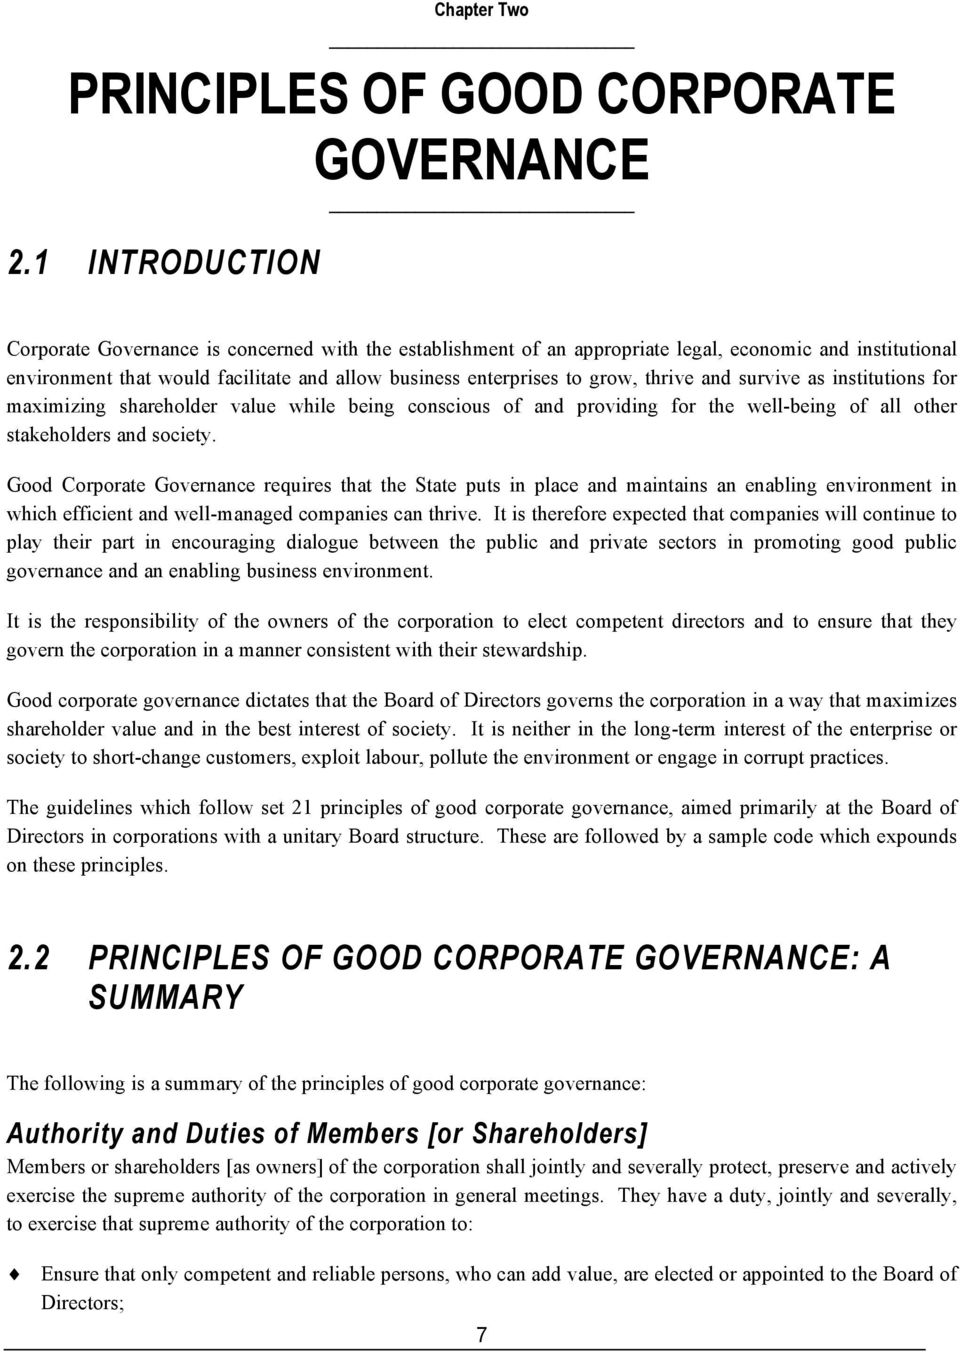 The Importance of Effective Corporate Governance